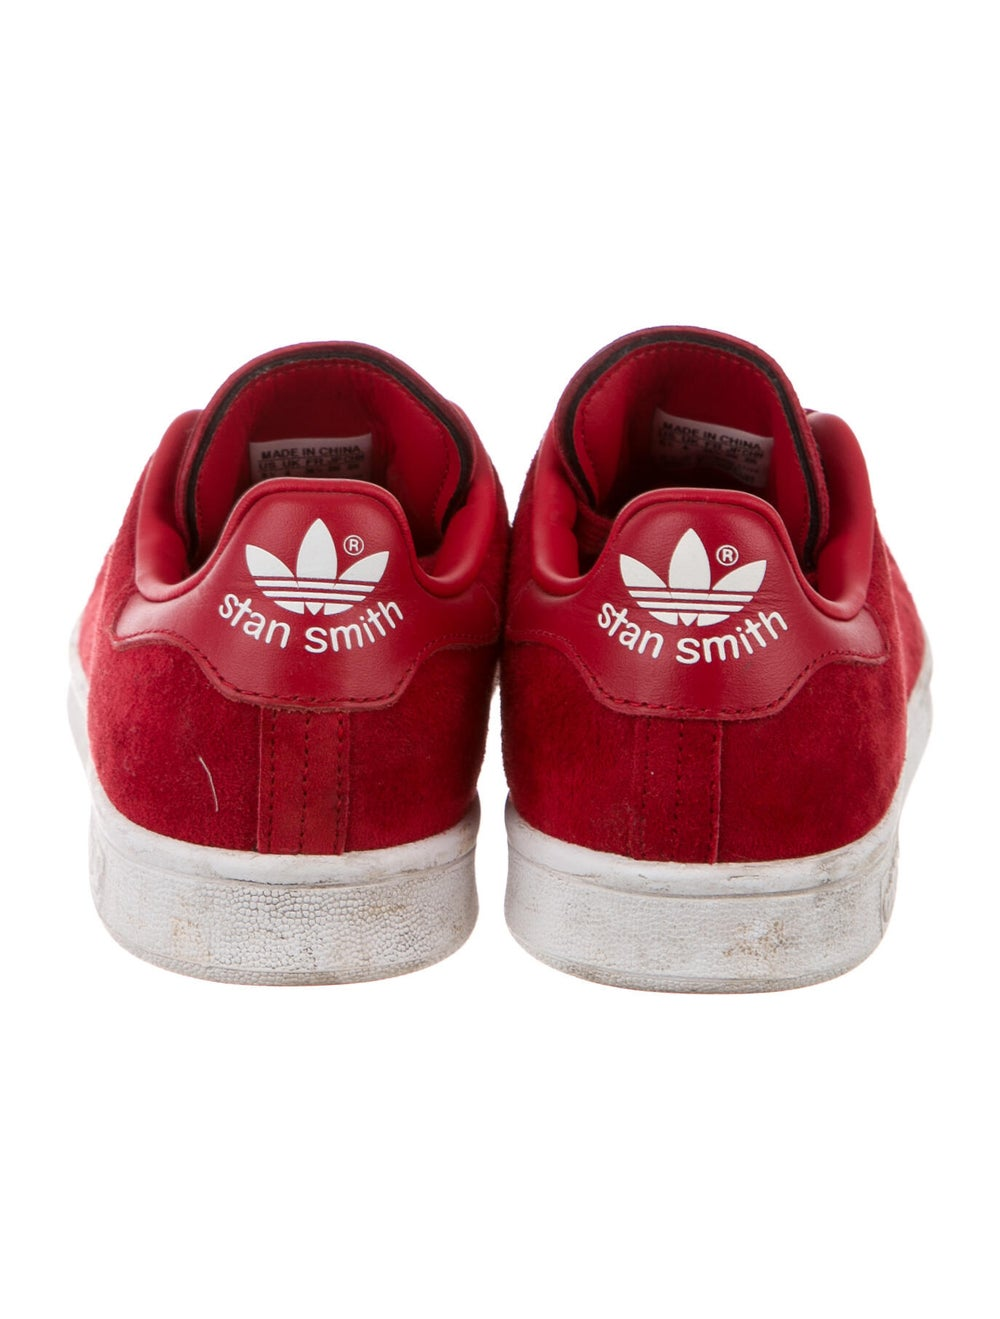 Adidas Suede Sneakers Red - image 4